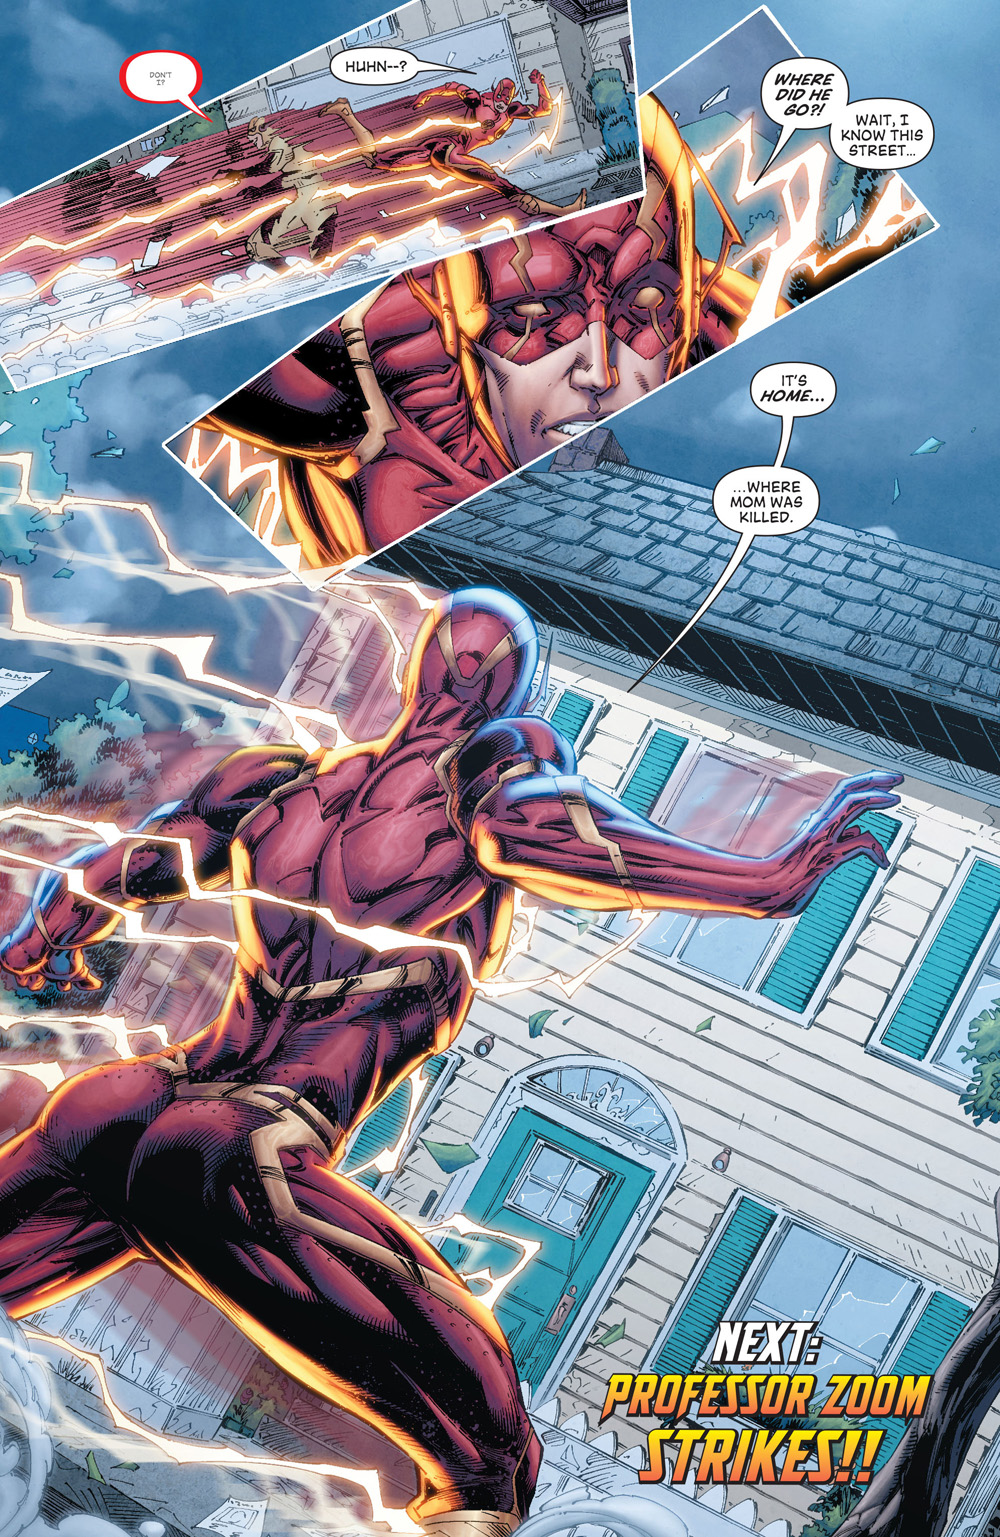 The Flash 42 Spoilers Amp Review Dc You S Professor Zoom